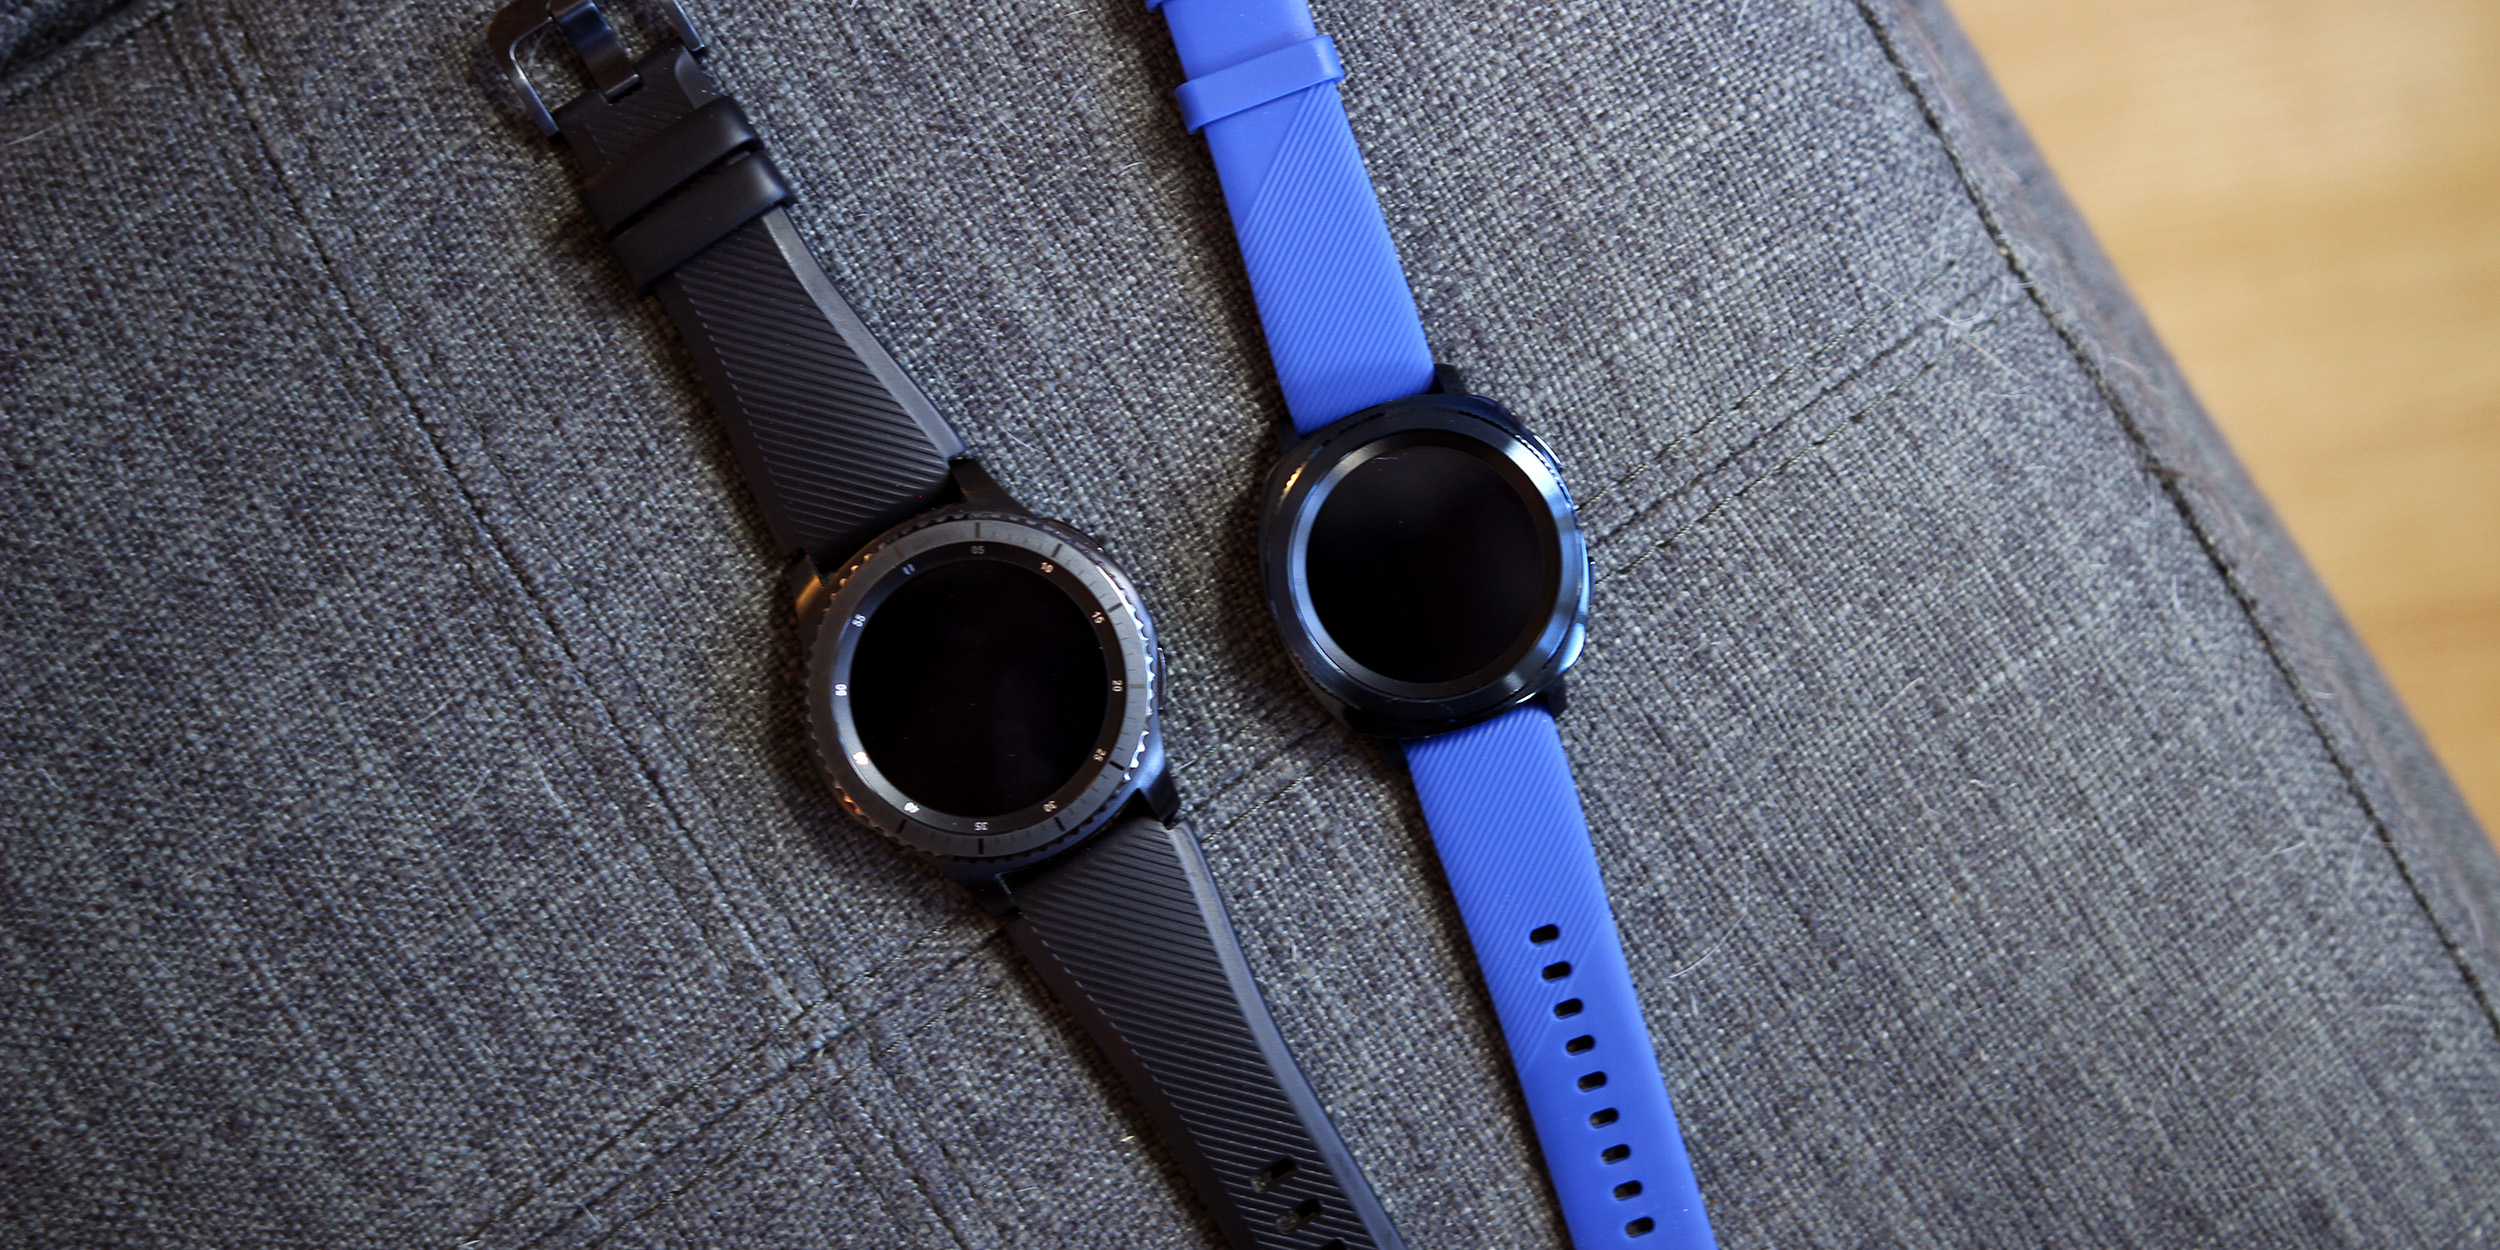 samsung galaxy watch may run updated version of tizen after all to launch with note 9